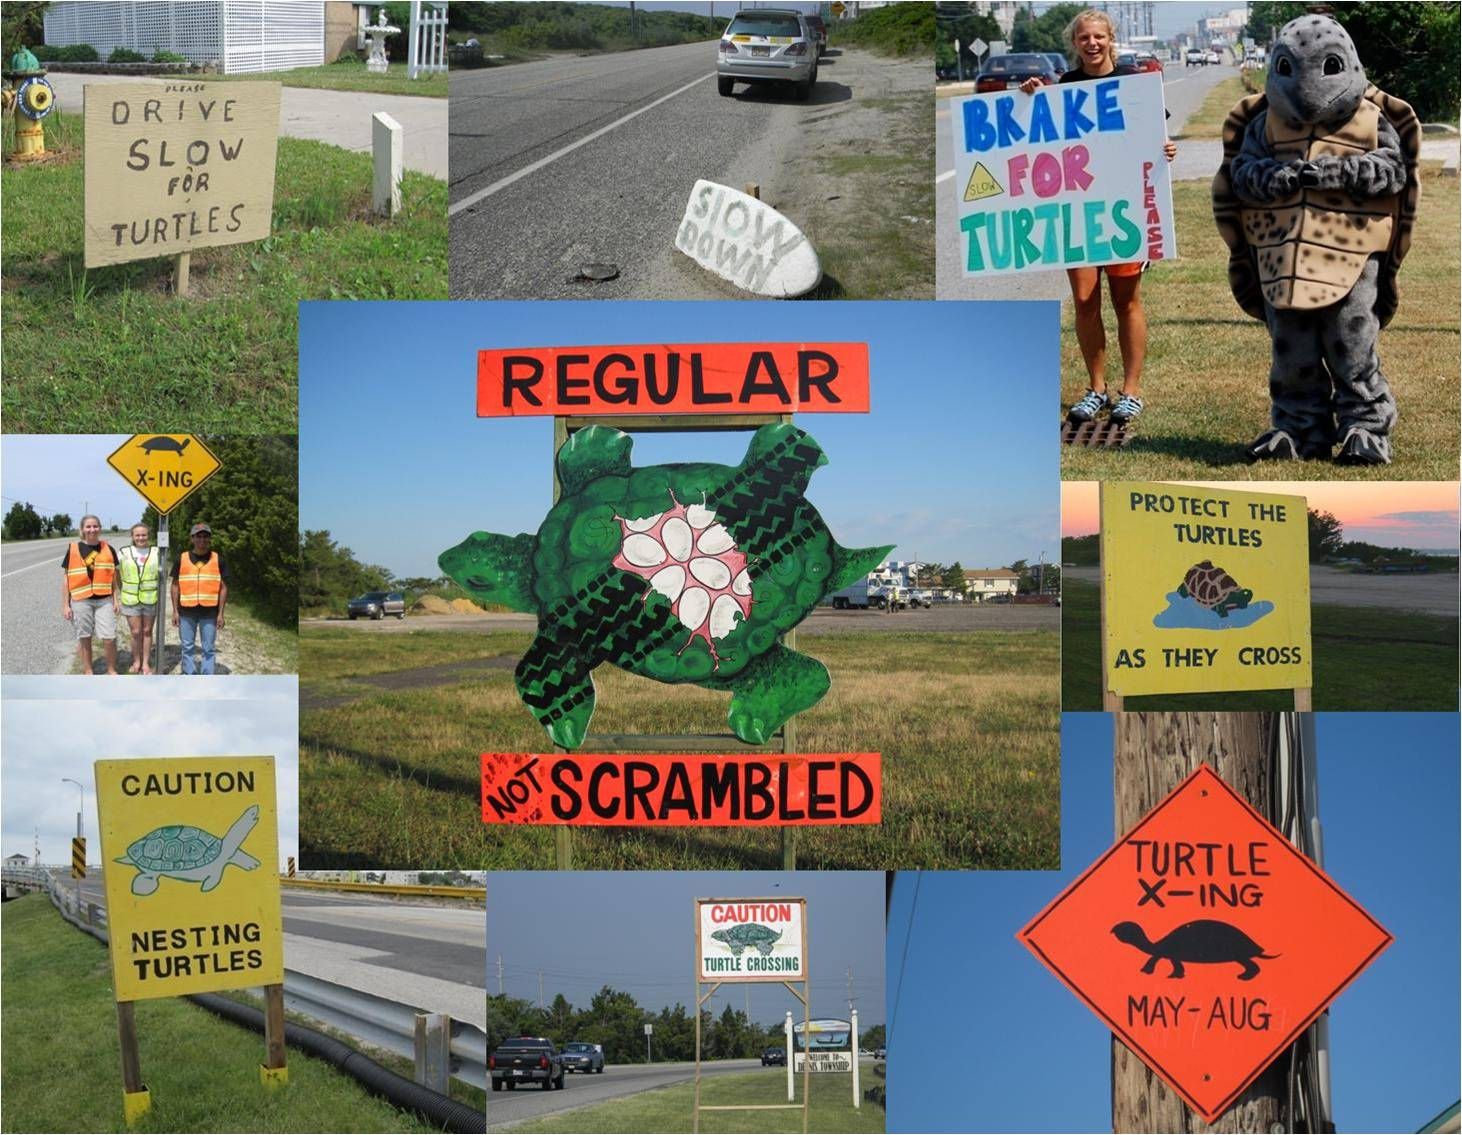 Brake for turtles signs